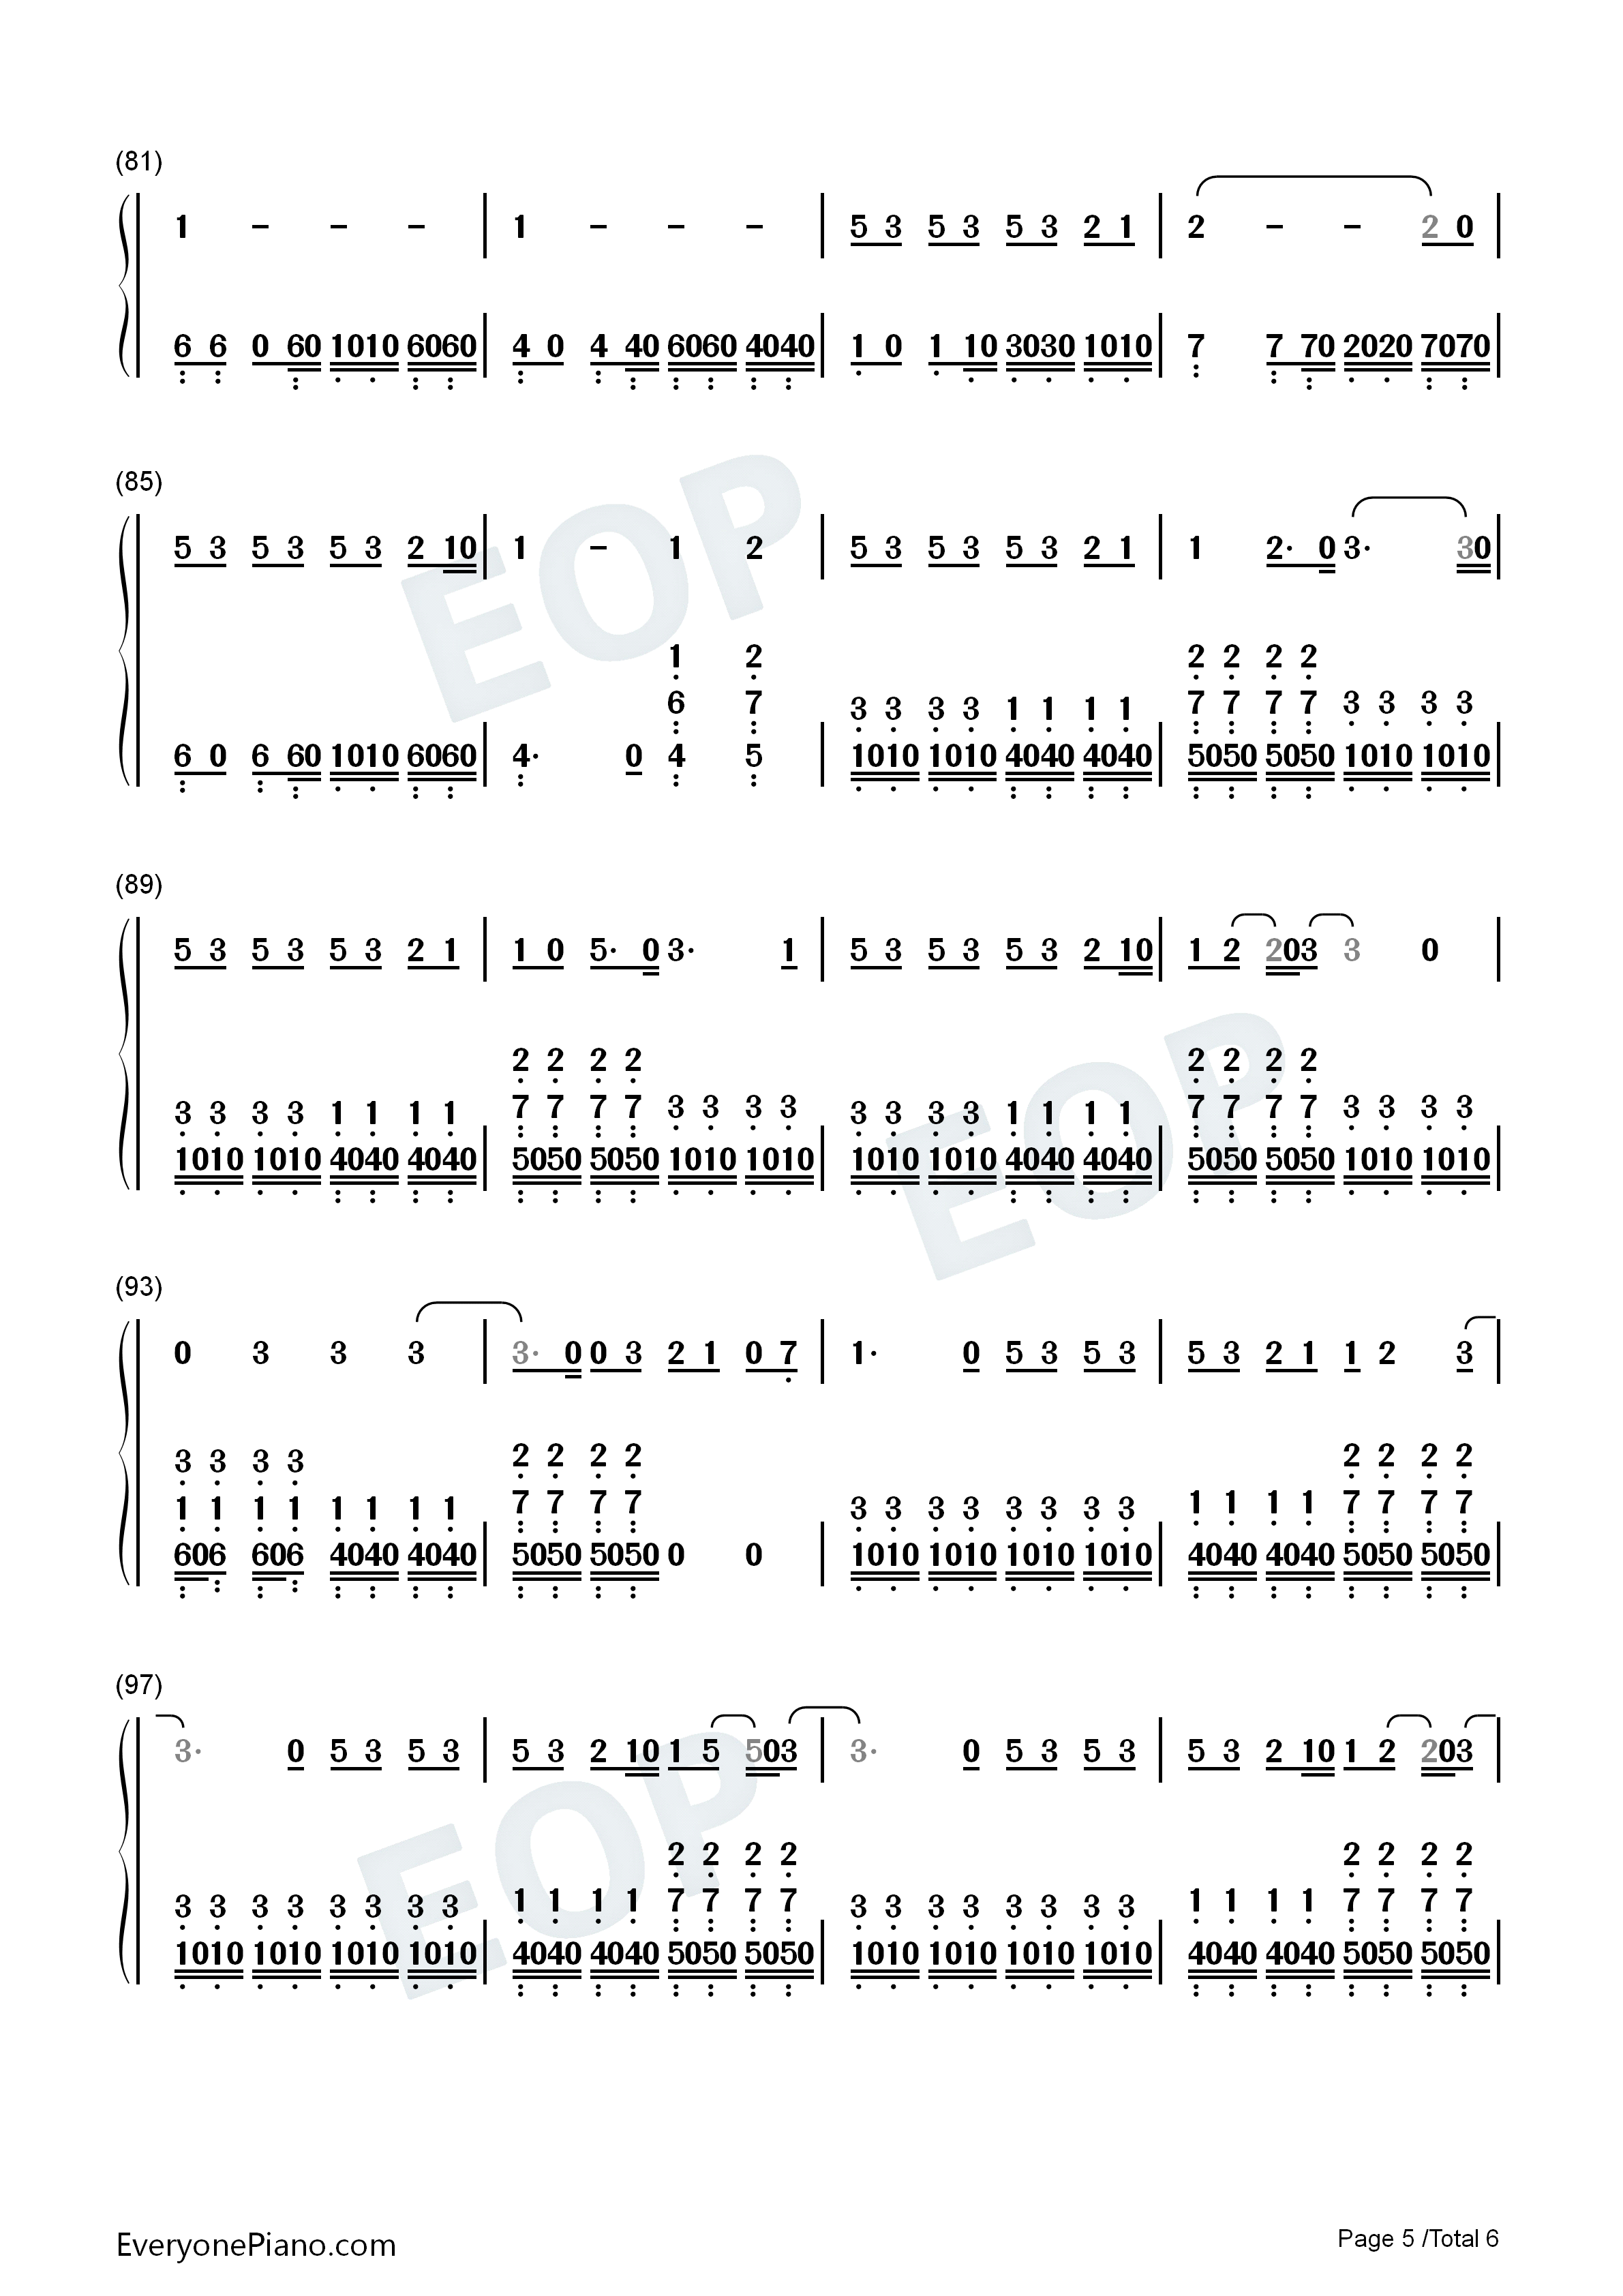 Number chords for